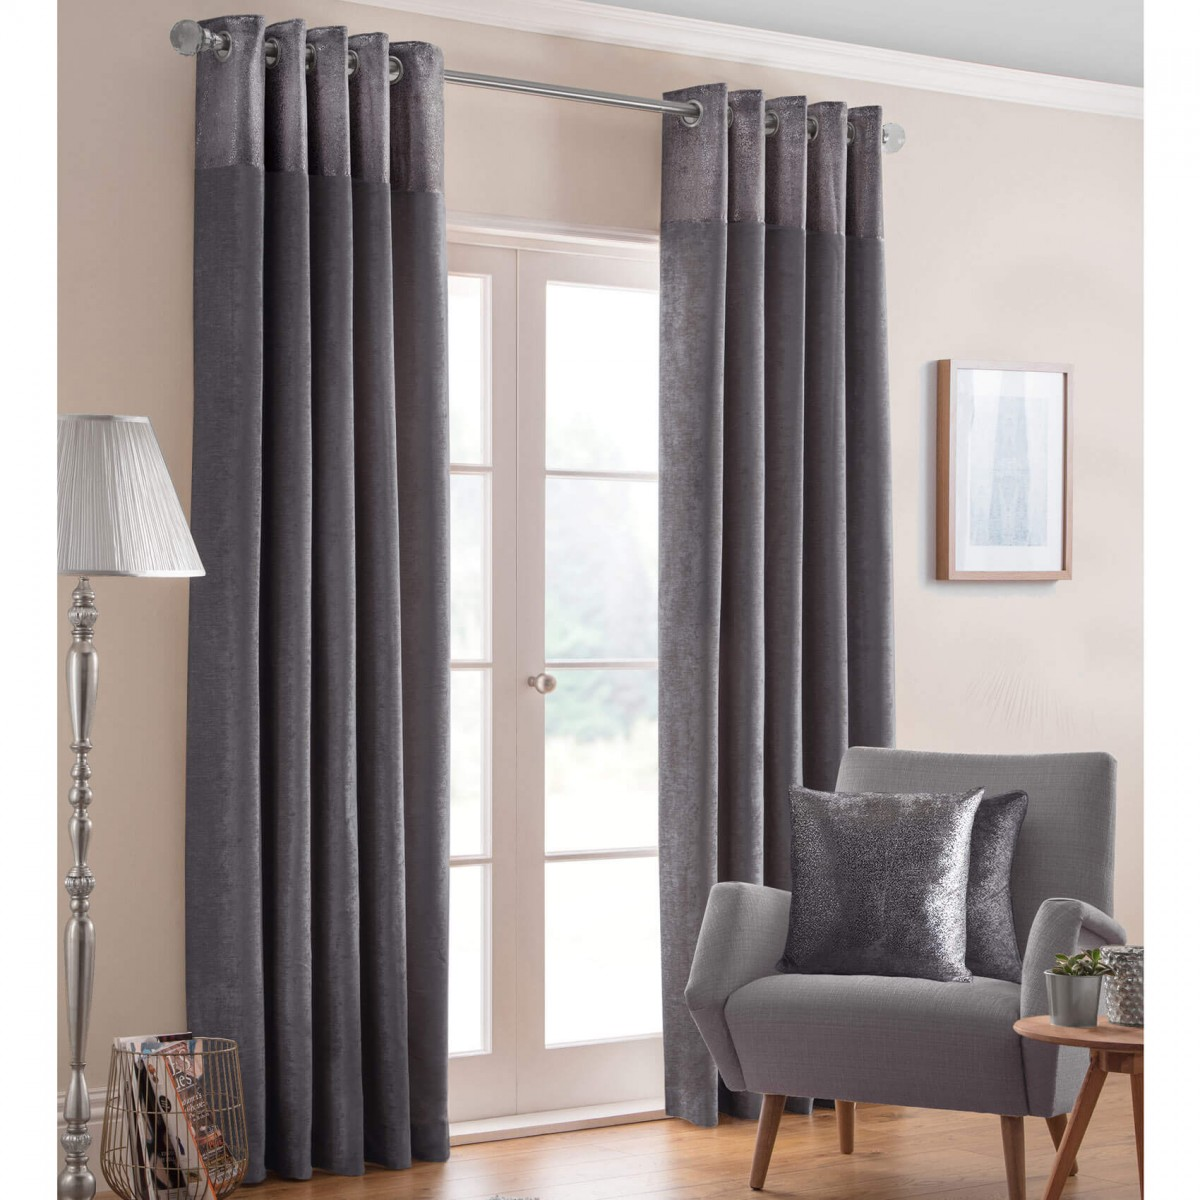 Design Studio Nova Lined Eyelet Curtains - Pewter